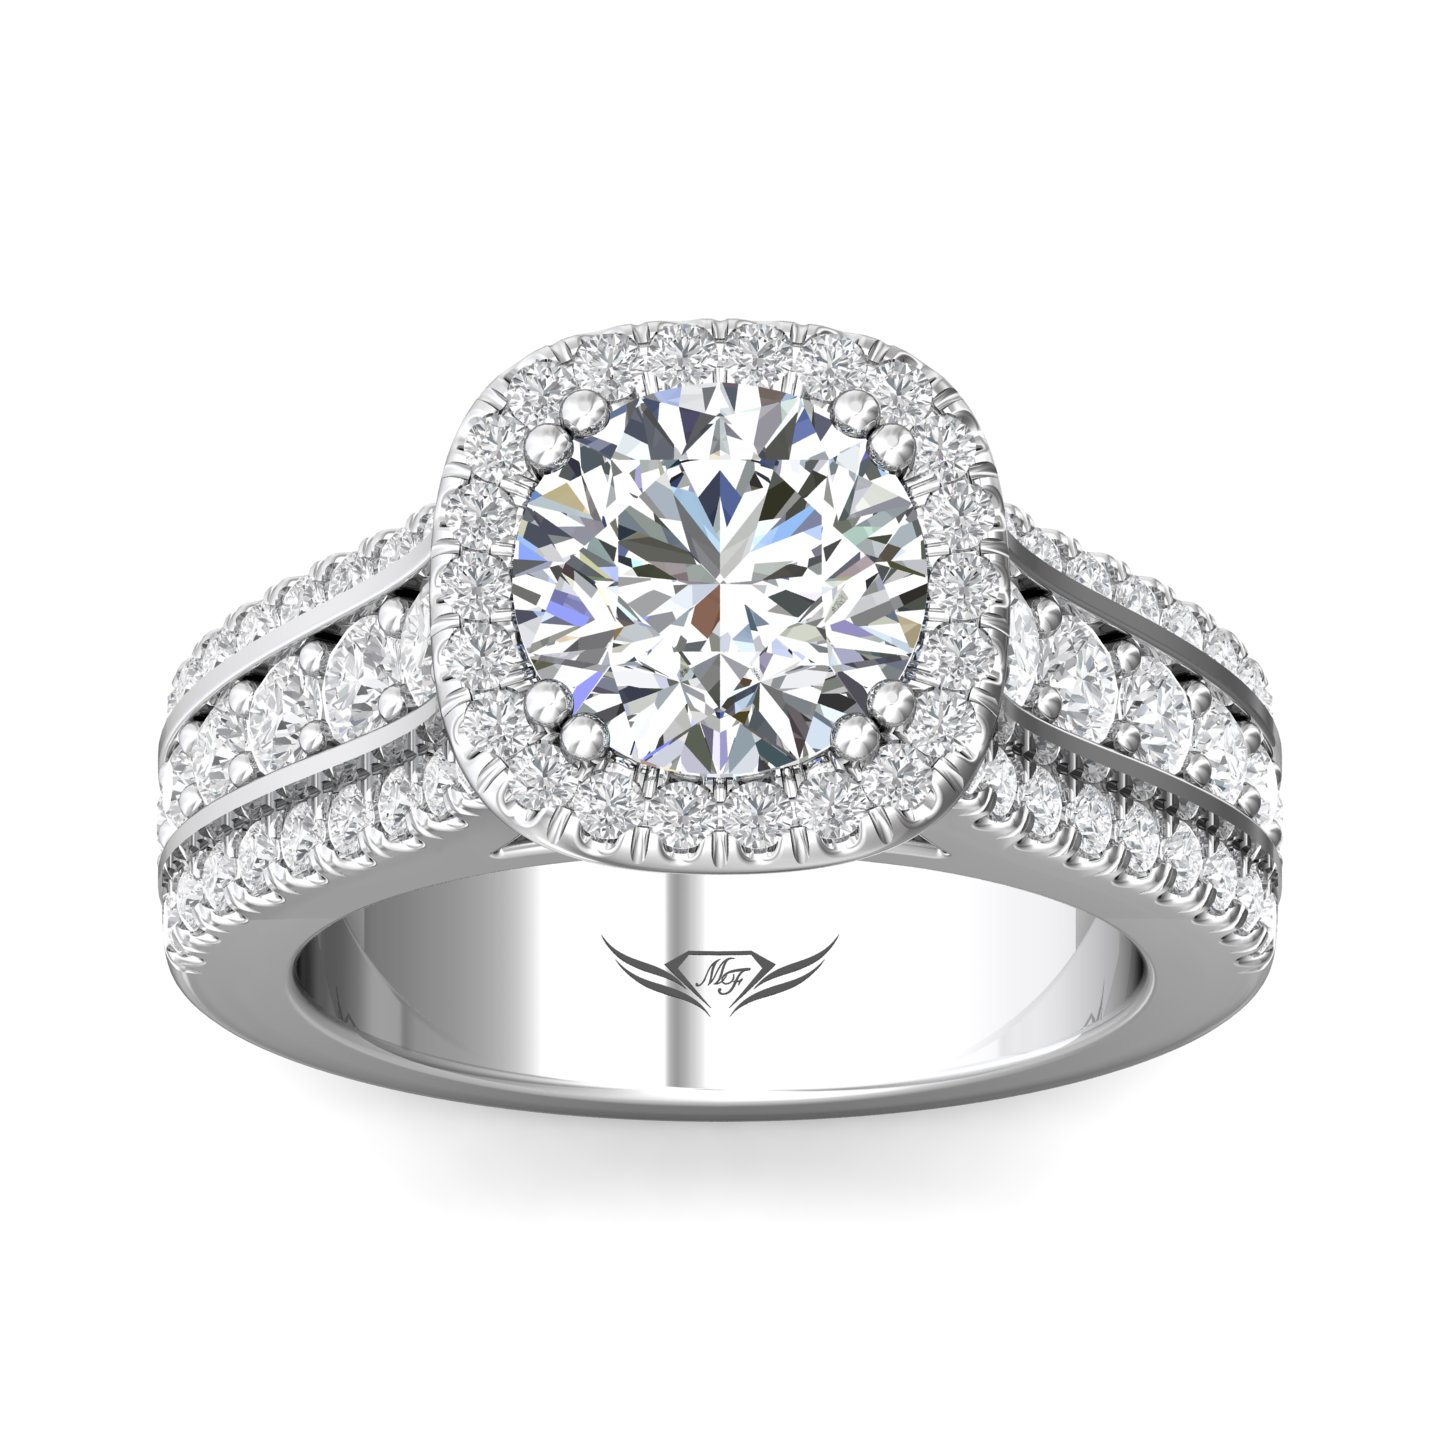 Rings - 14K White Gold FlyerFit Encore Engagement Ring - image #3